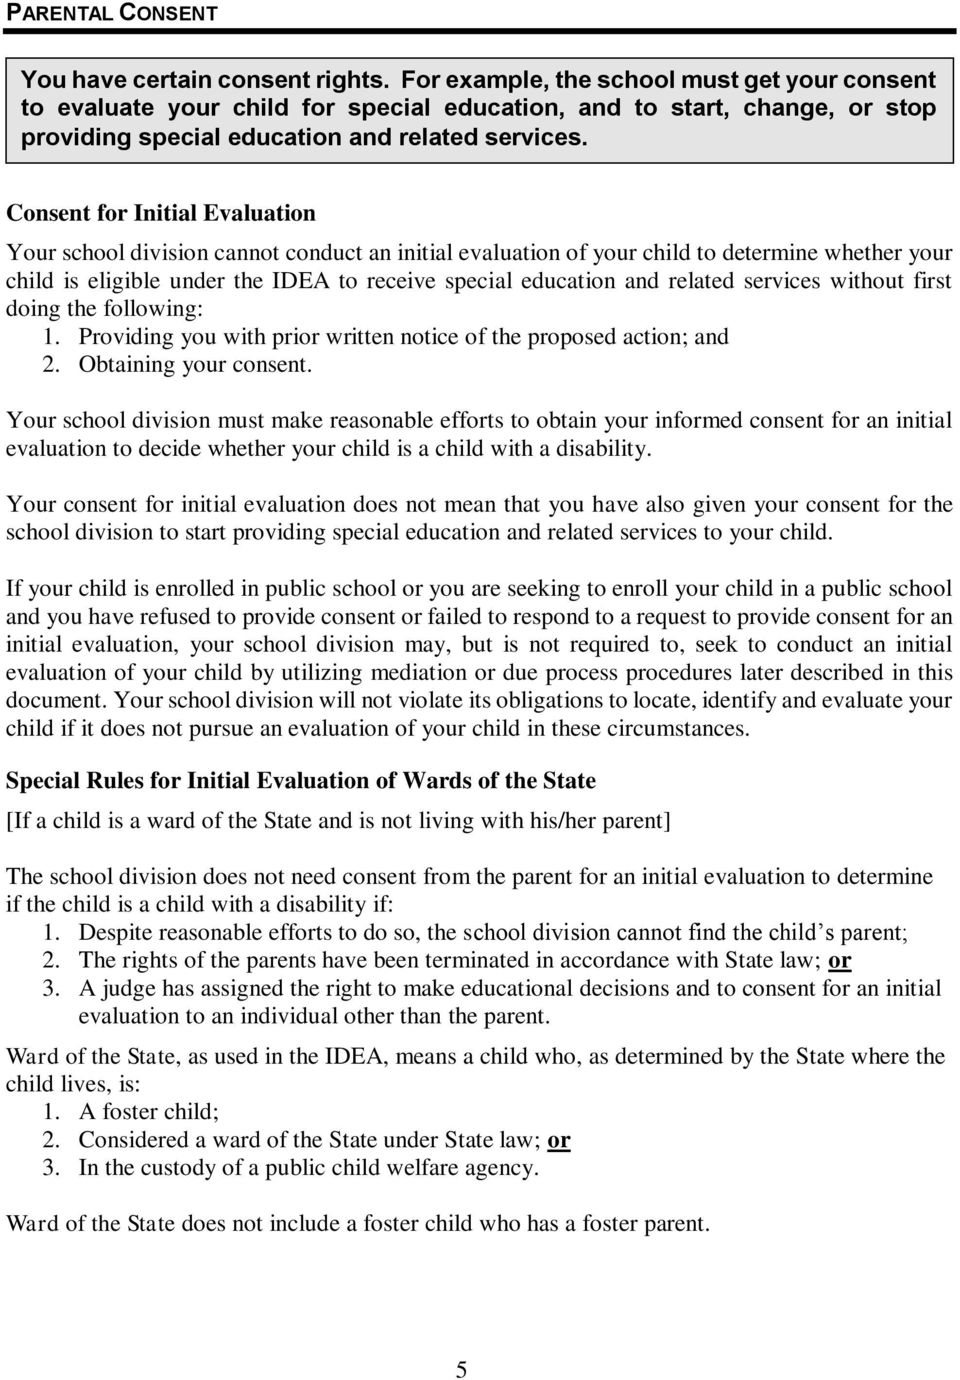 Consent for Initial Evaluation Your school division cannot conduct an initial evaluation of your child to determine whether your child is eligible under the IDEA to receive special education and